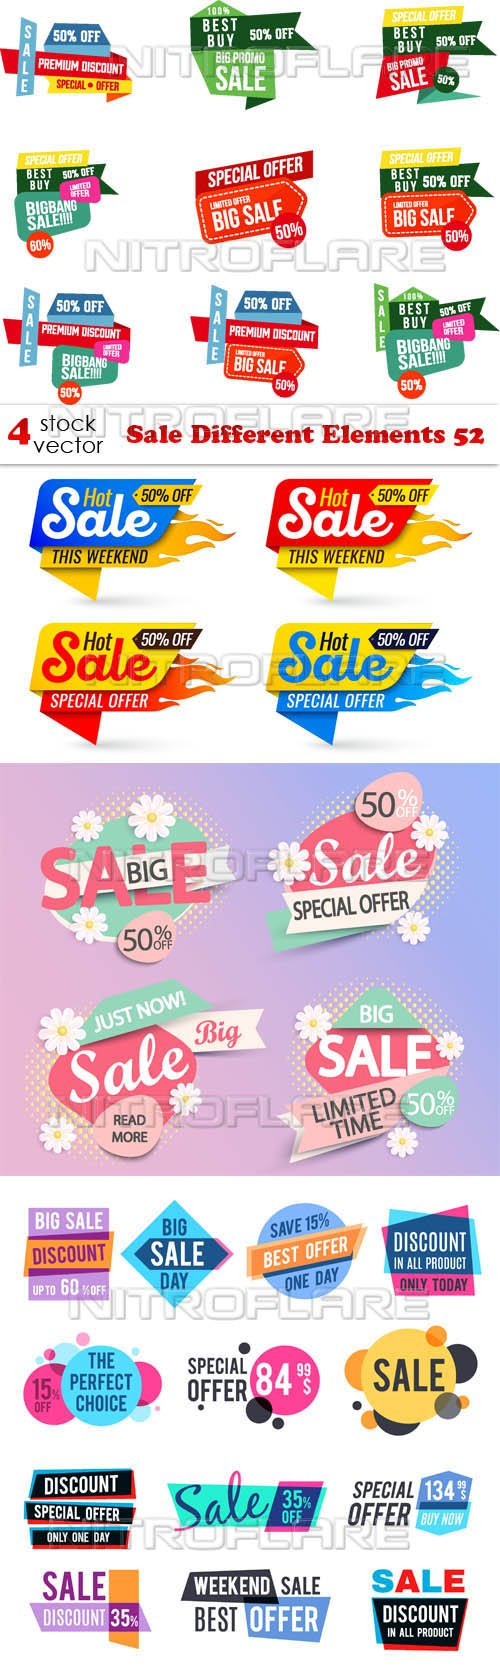 Vectors - Sale Different Elements 52